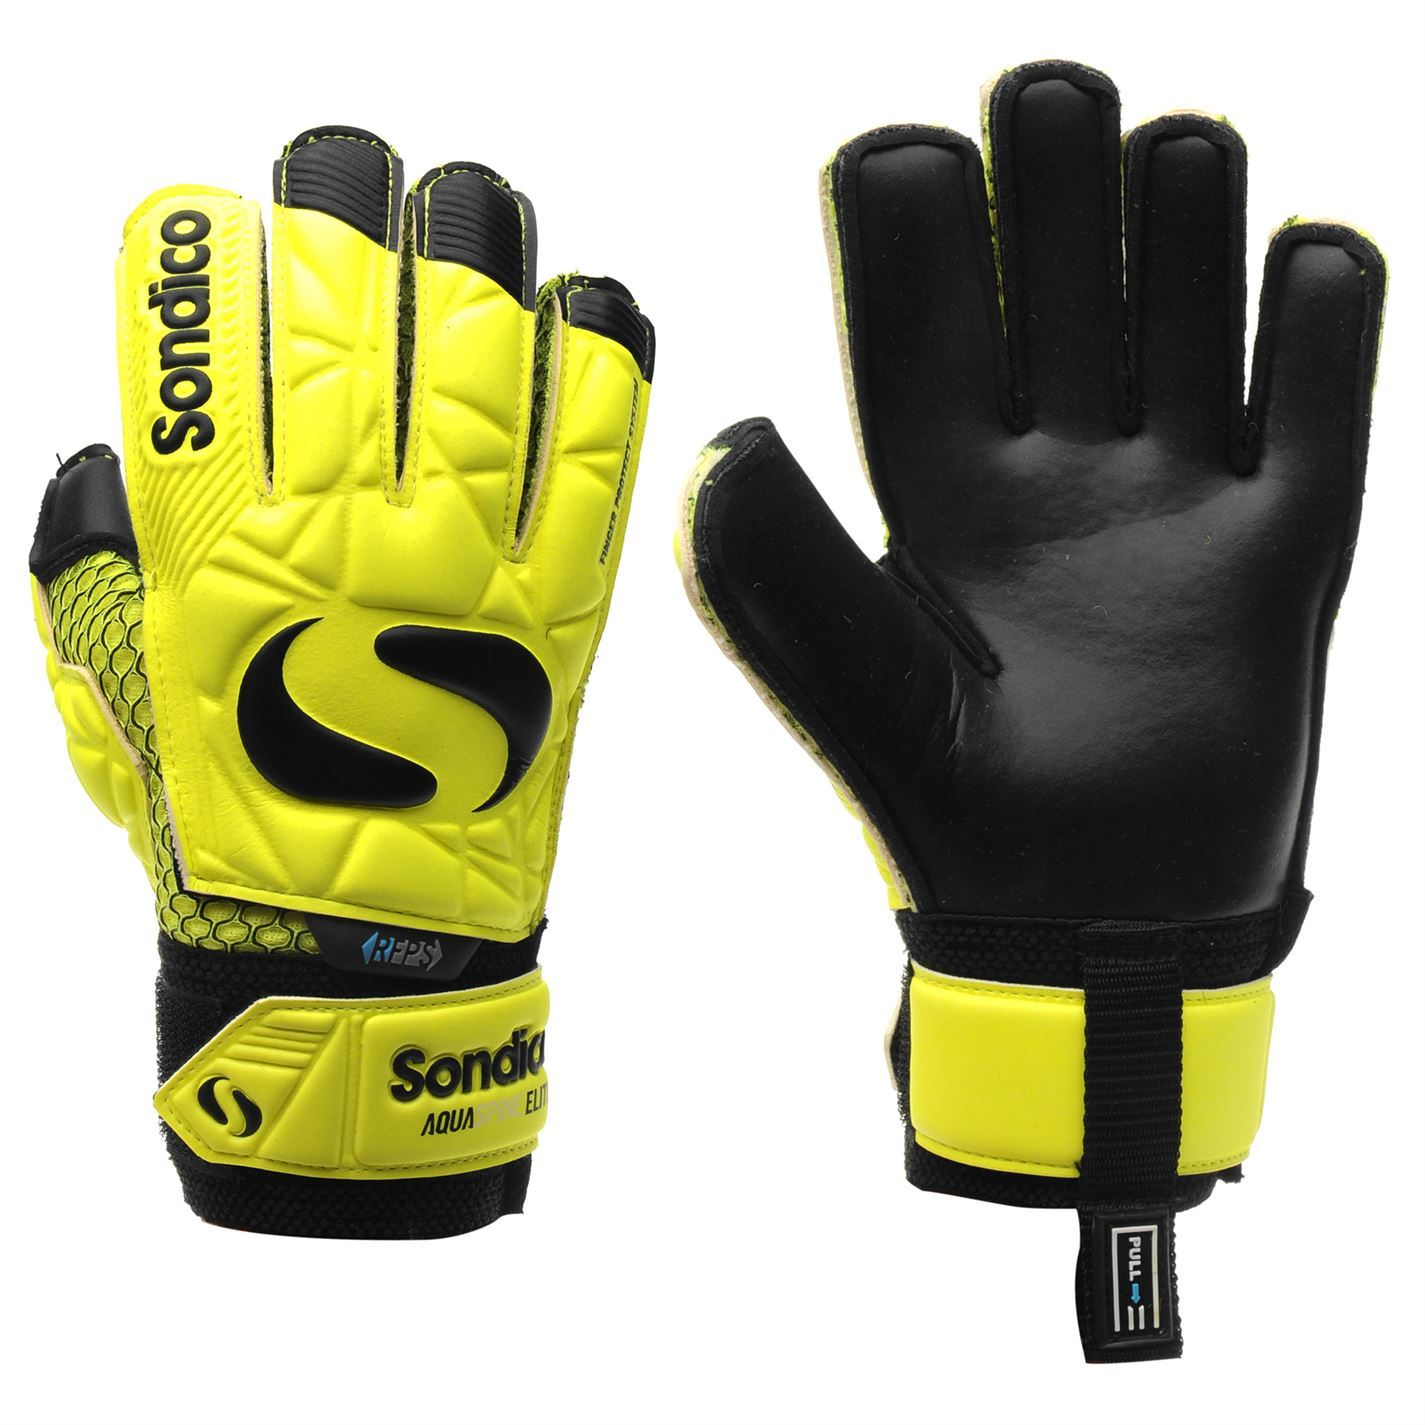 057ab3d743a The Kids Sondico Aqua Elite Goalkeeper Gloves have been crafted with a Duo  Grip latex foam palm for added grip for those exceptional saves along with  ...